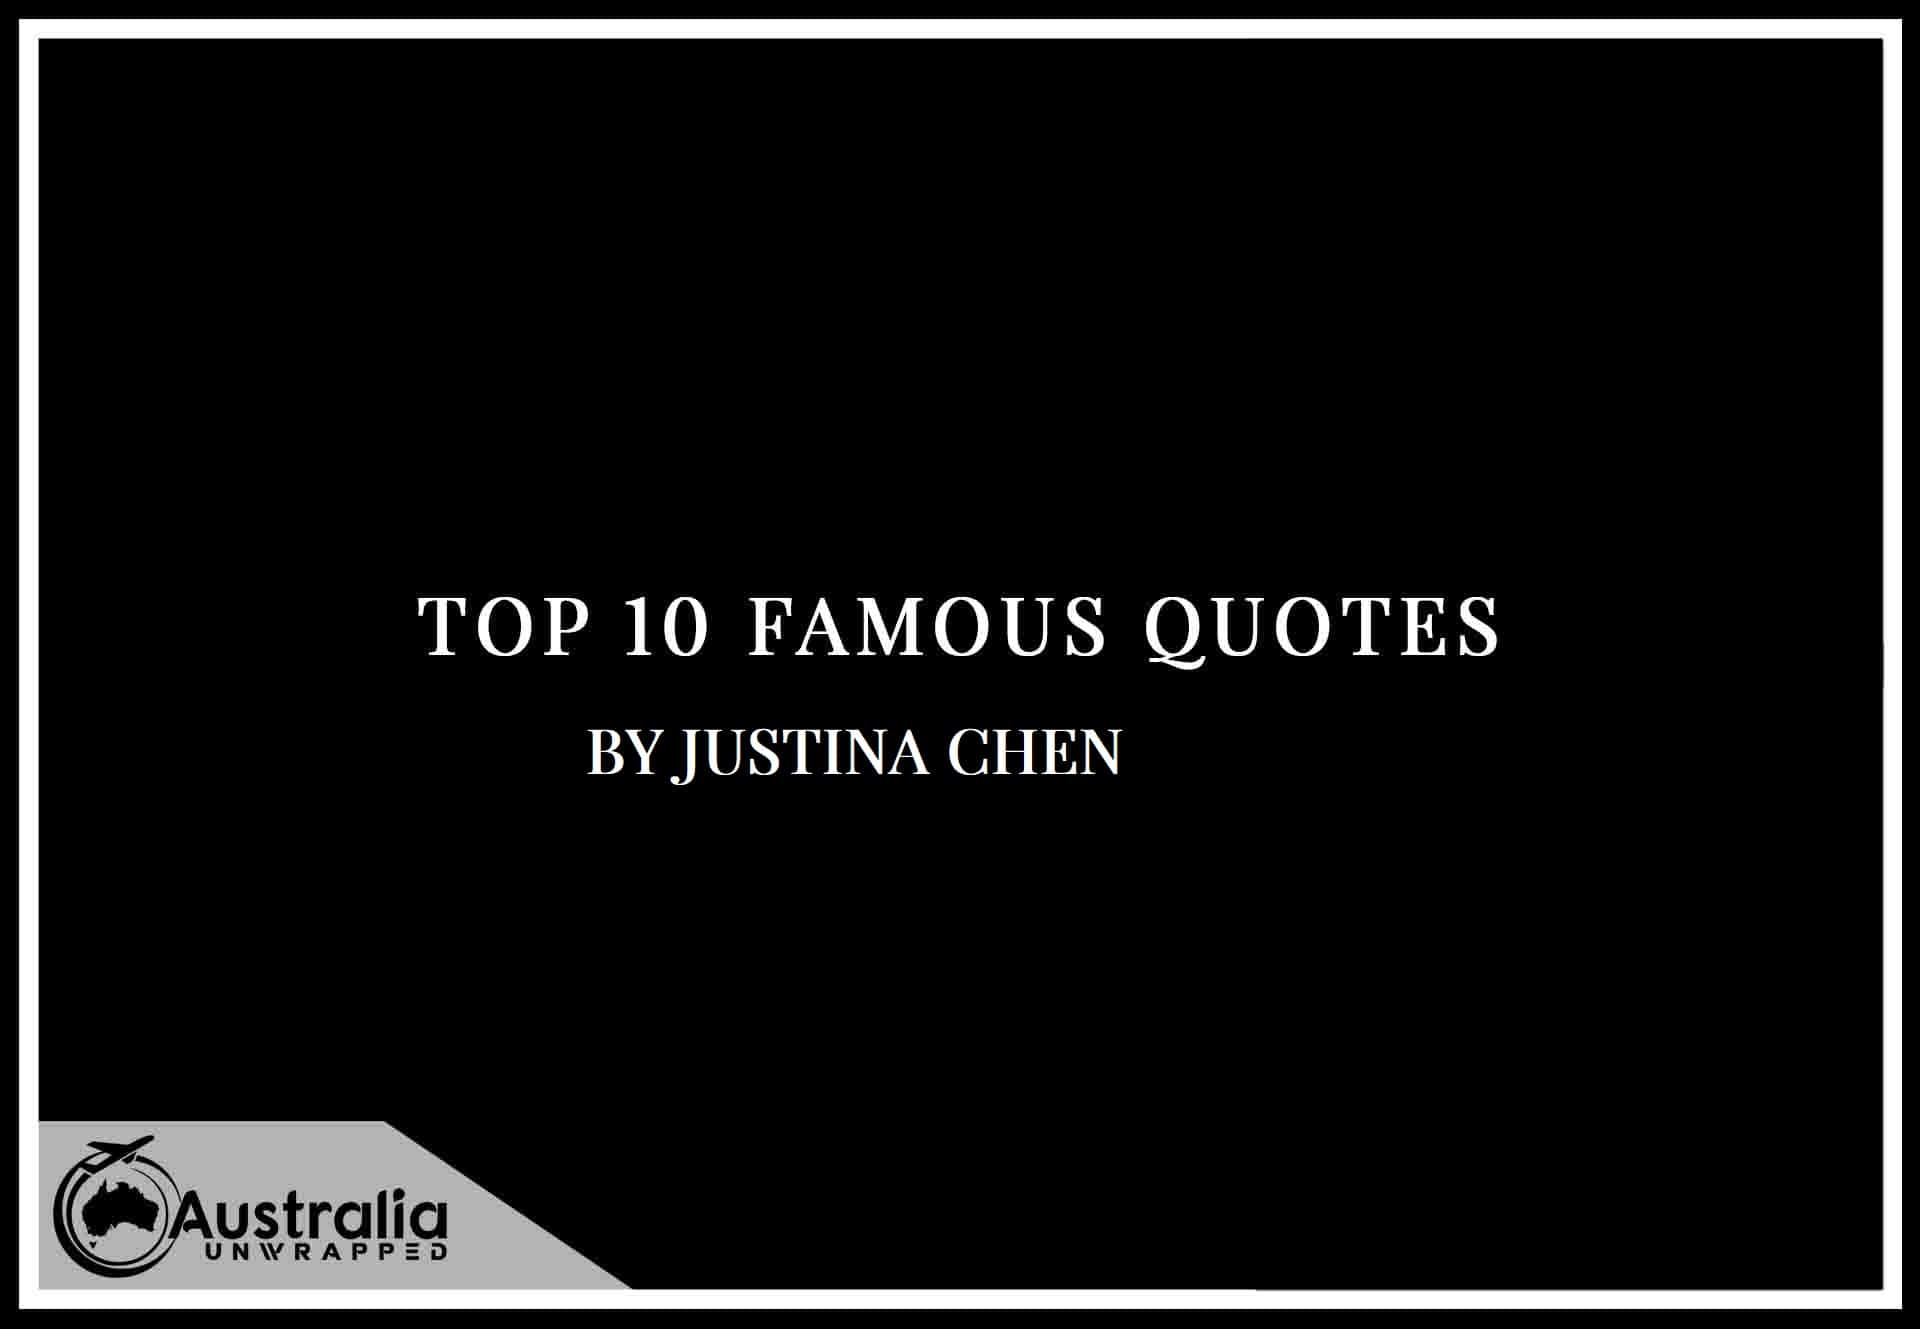 Top 10 Famous Quotes by Author Justina Chen Headley